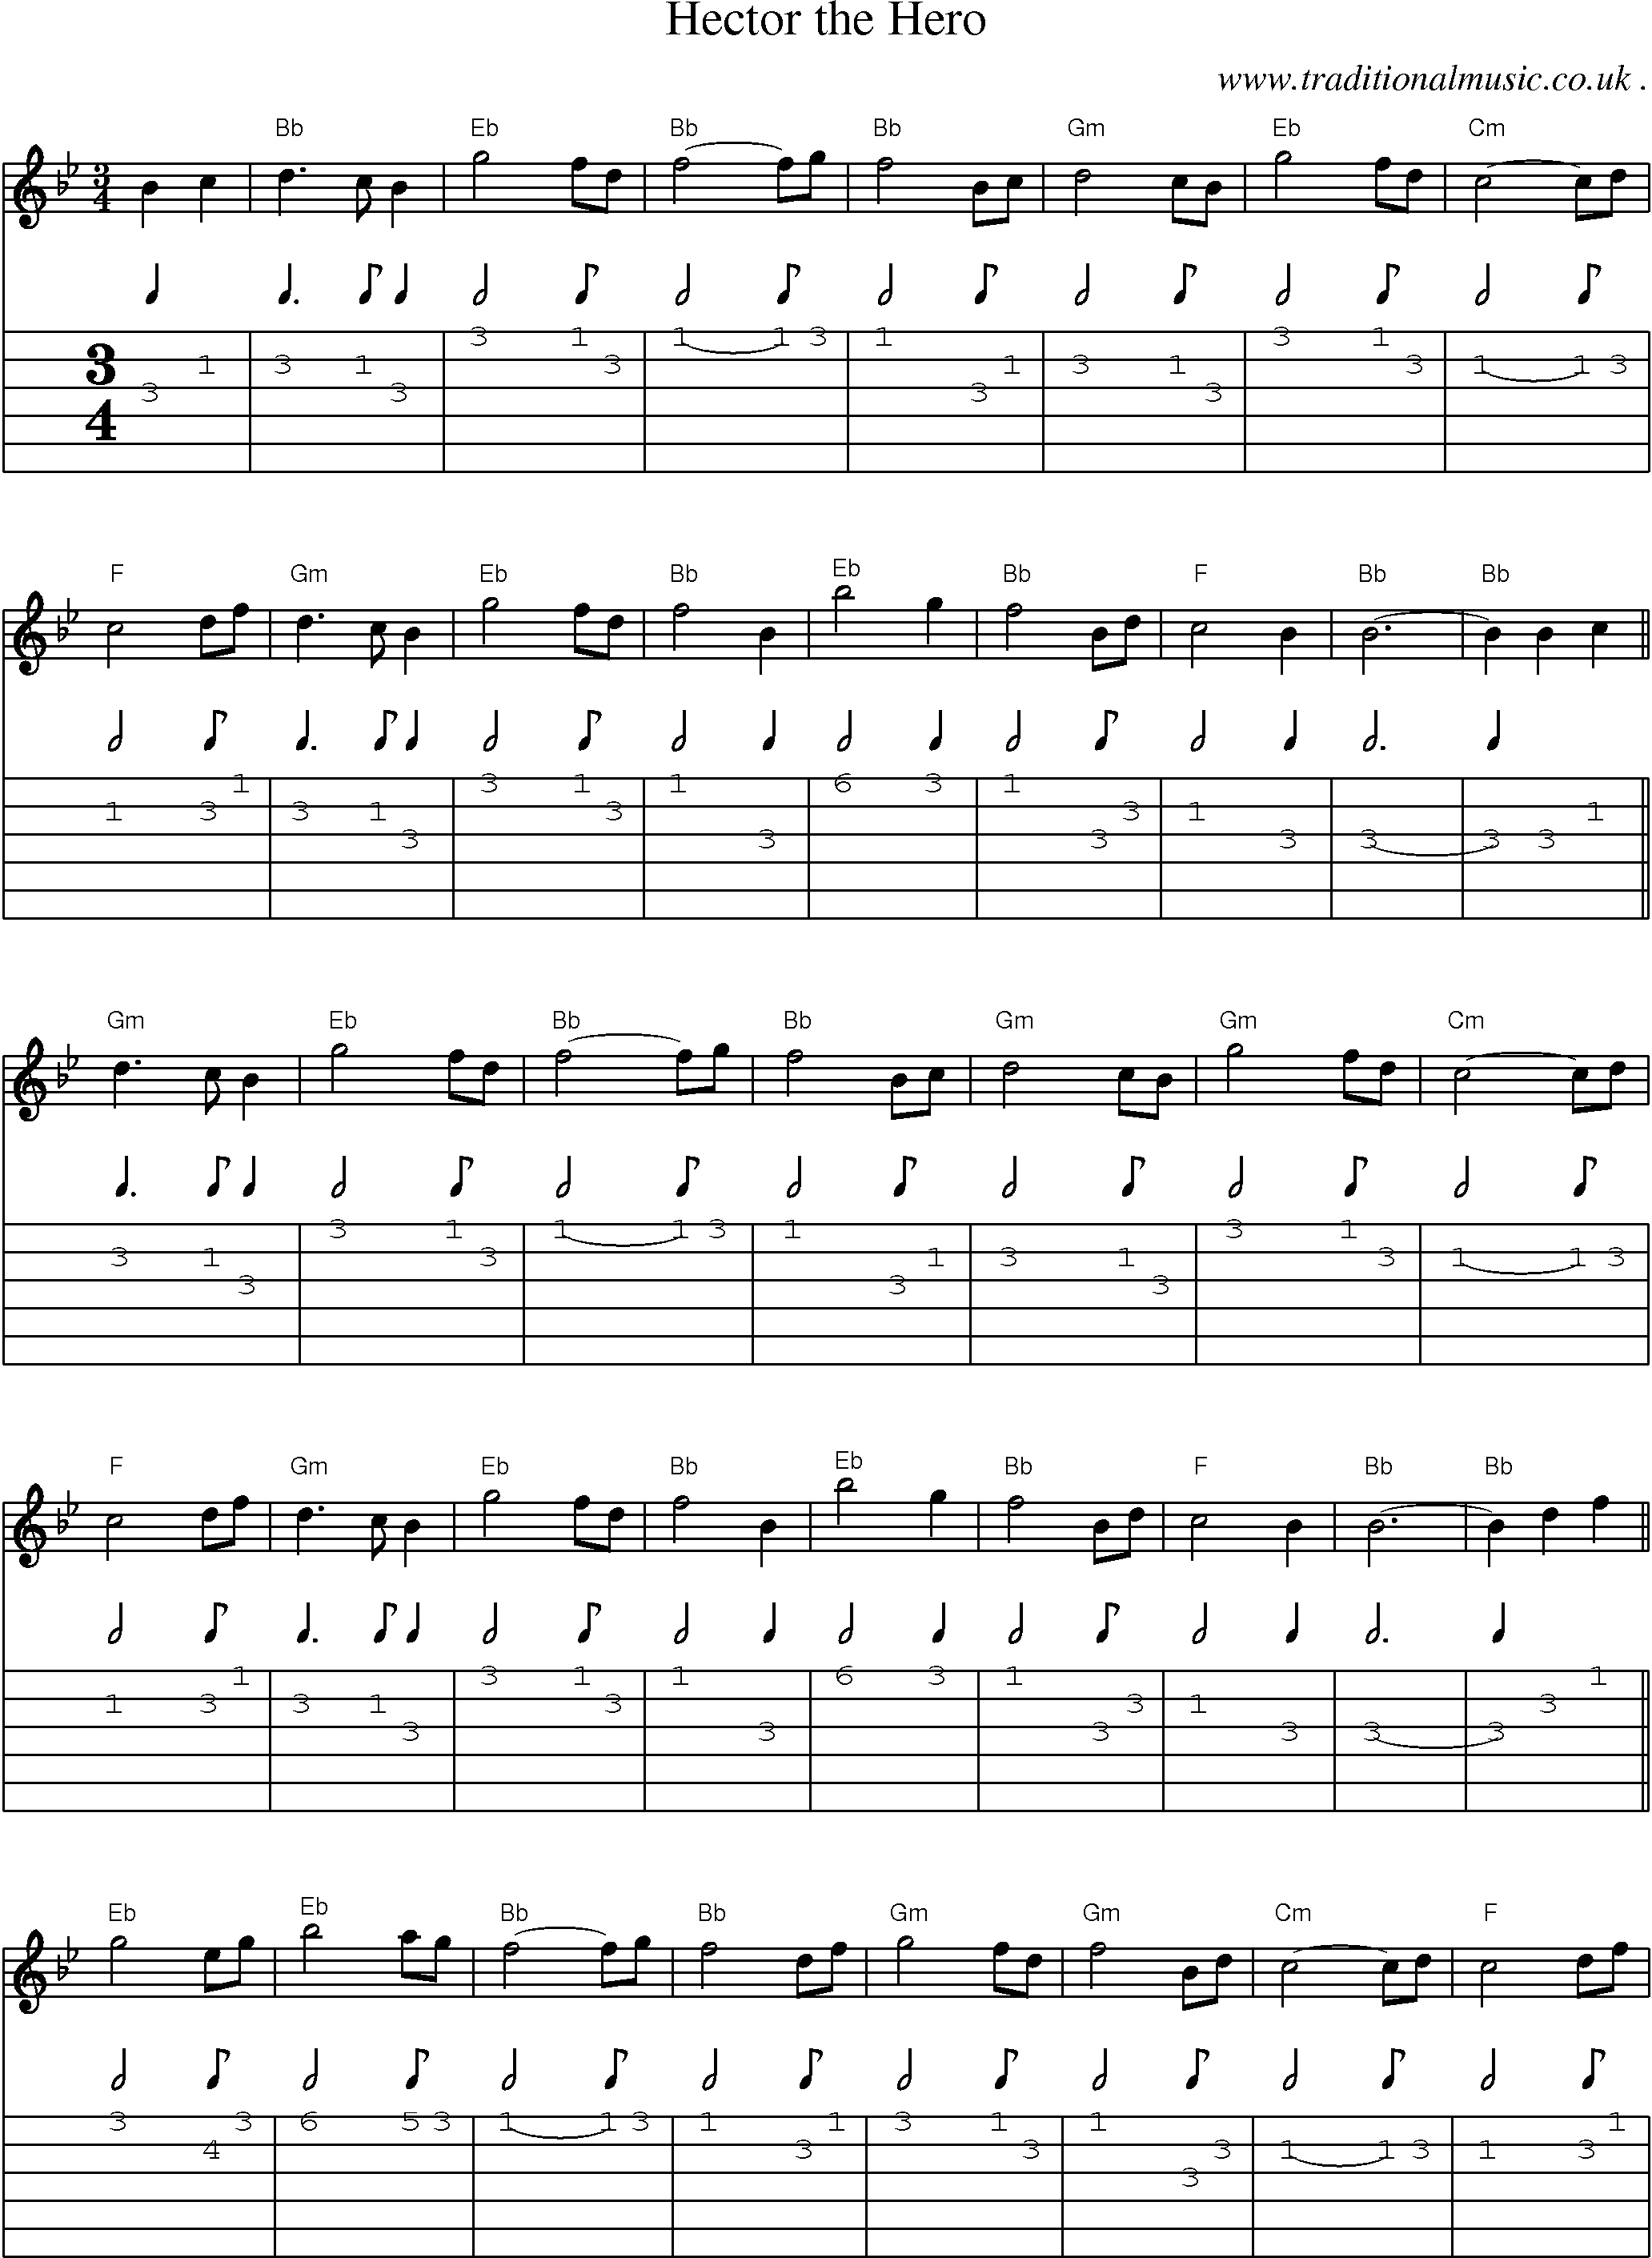 Folk and Traditional Music, Sheet-Music, Guitar tab, mp3 audio, midi and PDF for: Hector The Hero